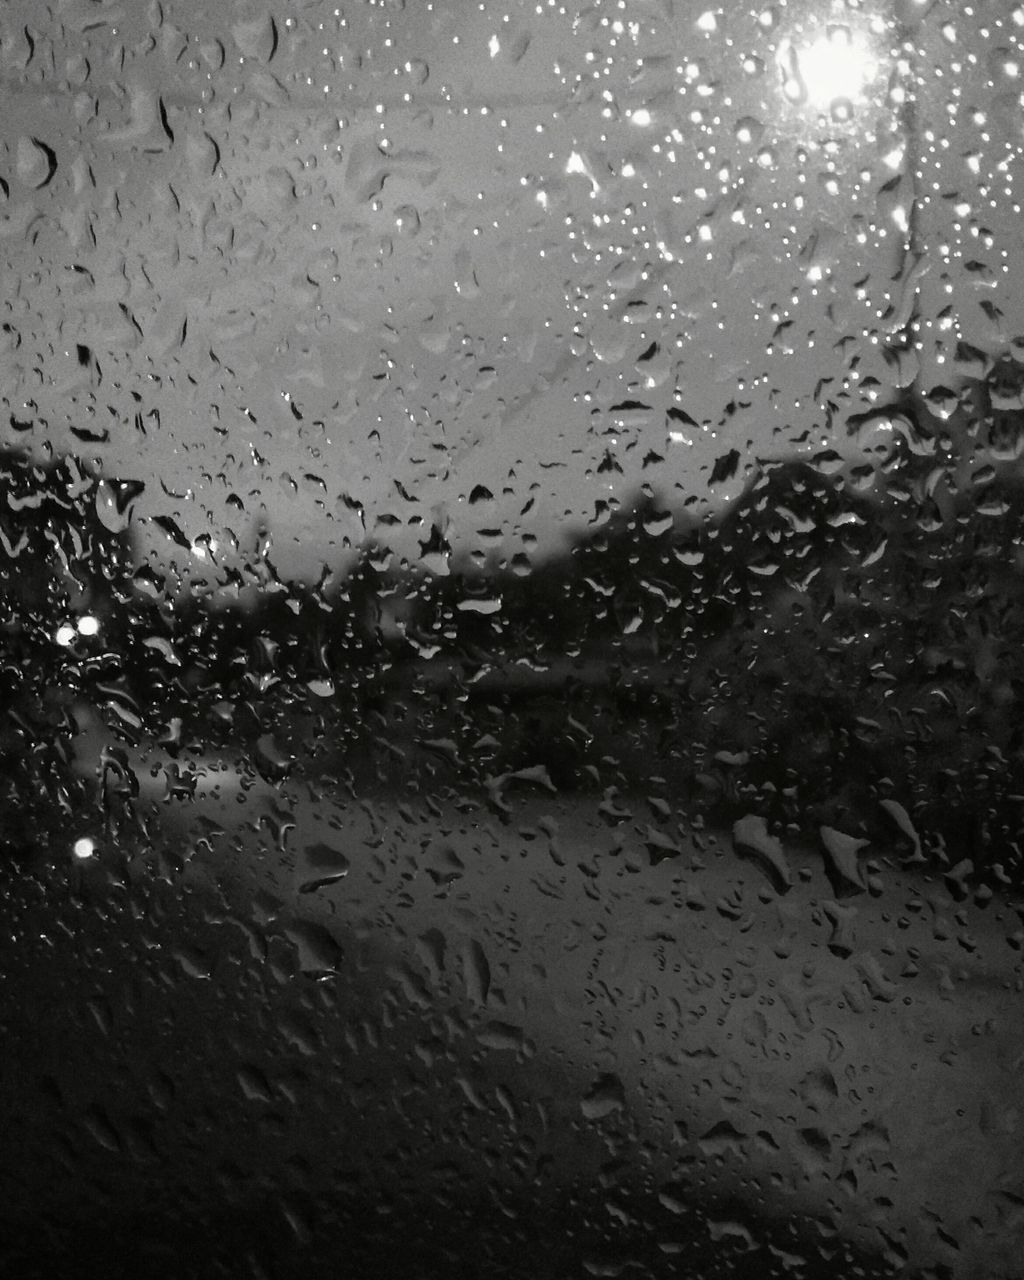 window, glass - material, transparent, drop, vehicle interior, water, wet, rain, full frame, car interior, raindrop, backgrounds, rainy season, indoors, no people, land vehicle, car, condensation, close-up, looking through window, day, nature, sky, freshness